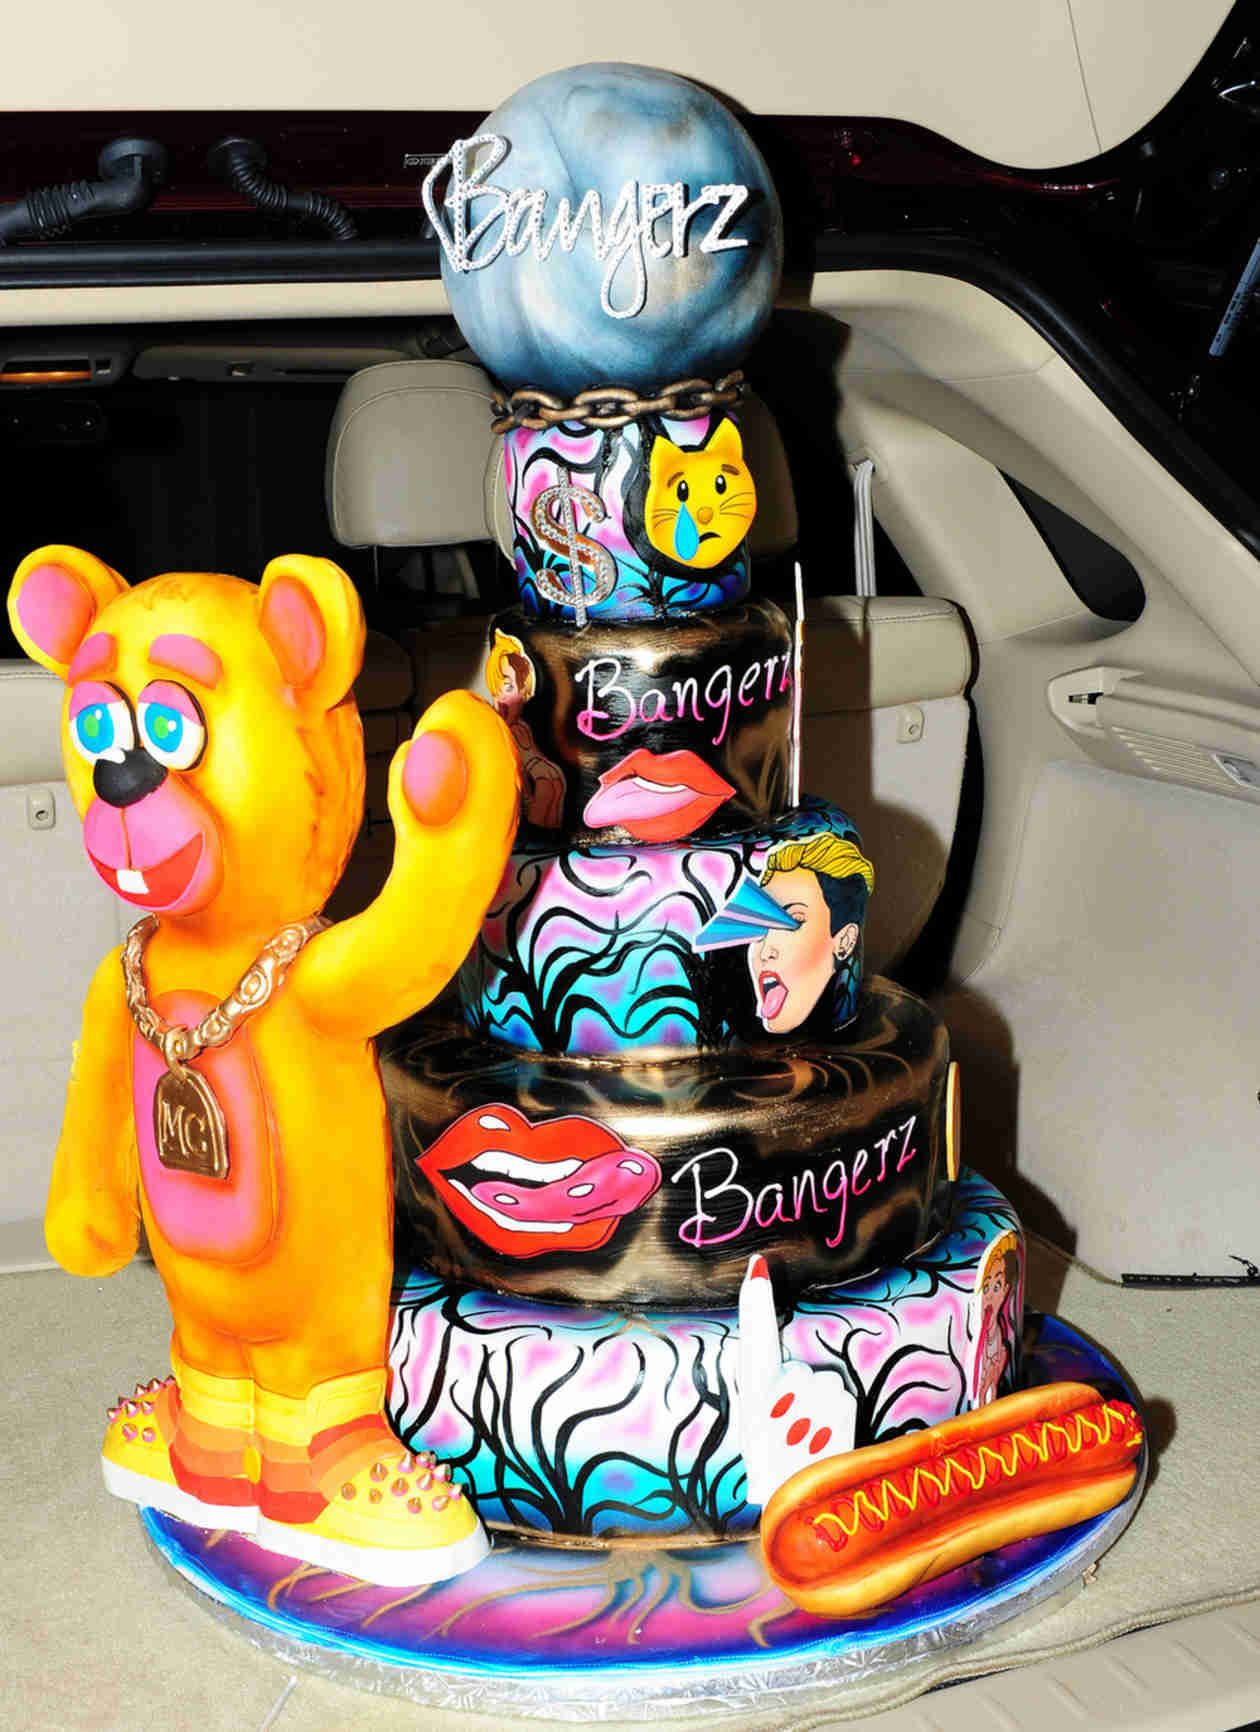 Miley Cyruss Bangerz Tour Cake In Miami Florida On March 22 2014